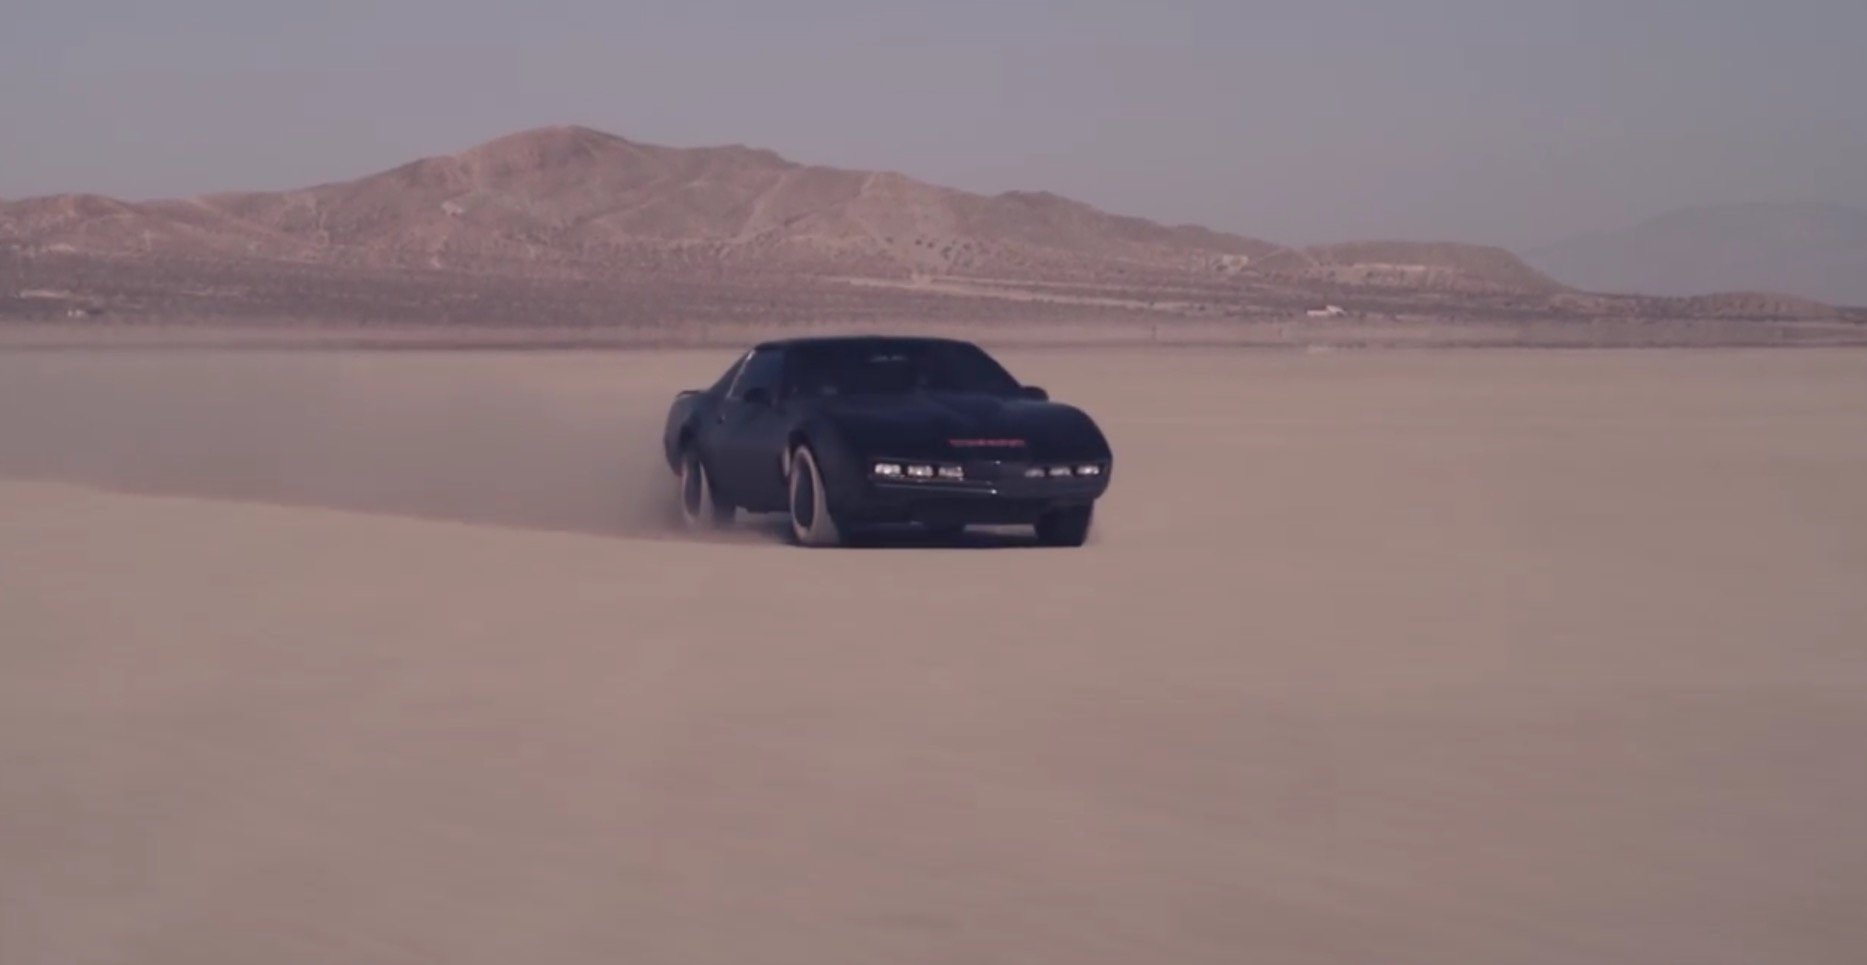 Knight Rider Trailer Suggests Revamp With David Hasselhoff